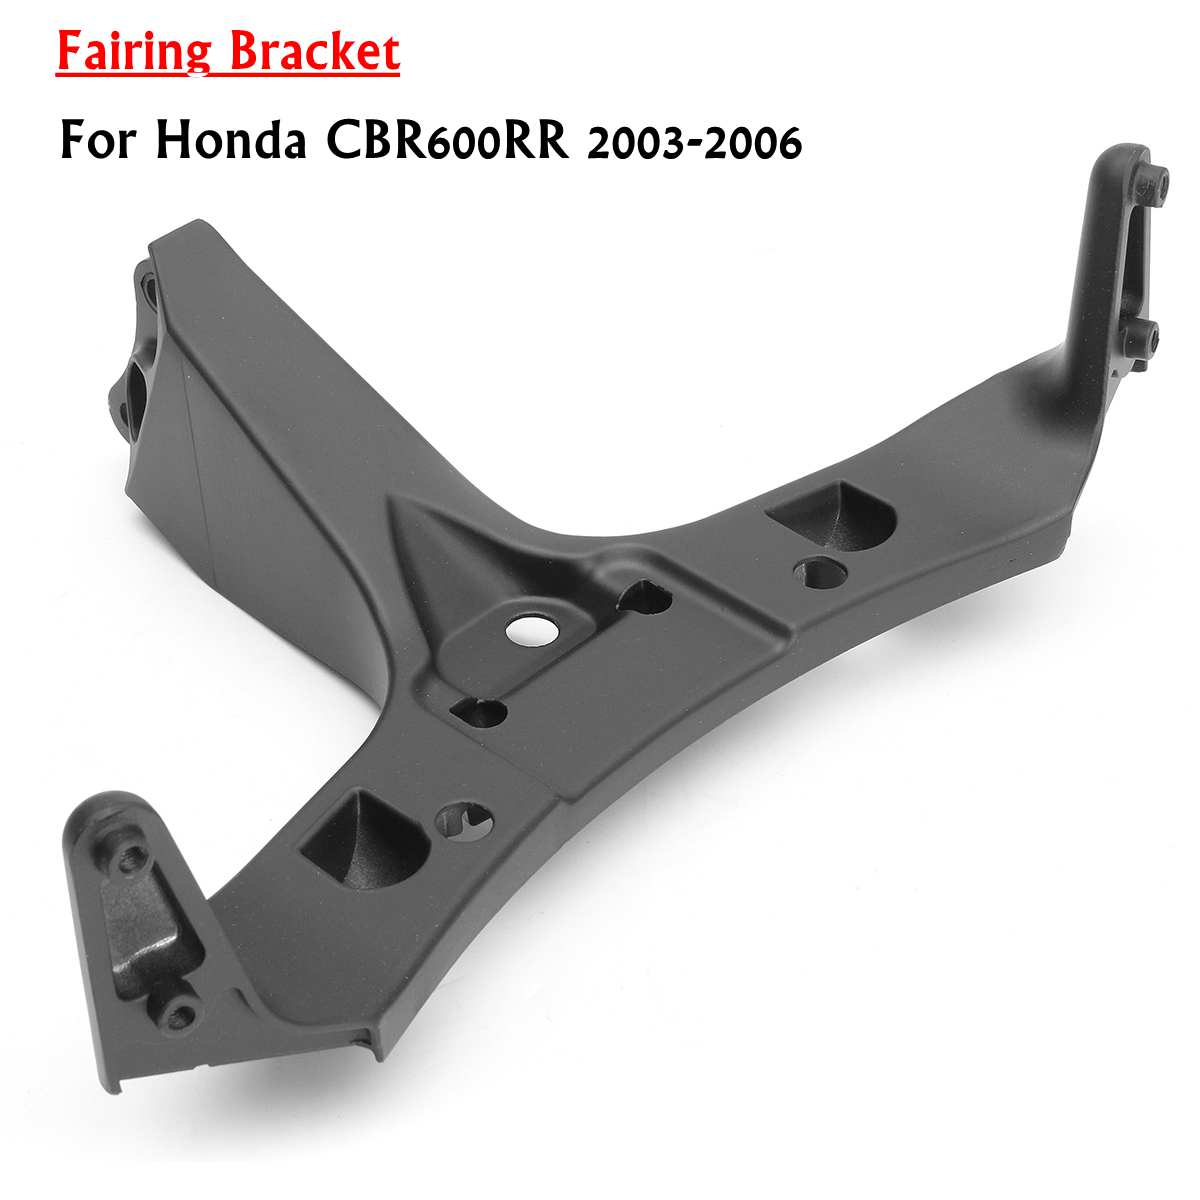 Front Headlight Fairing Bracket Front Upper Fairing Stay Bracket For Honda CBR600RR CBR 600RR 2003 2004 20054 2006 Black